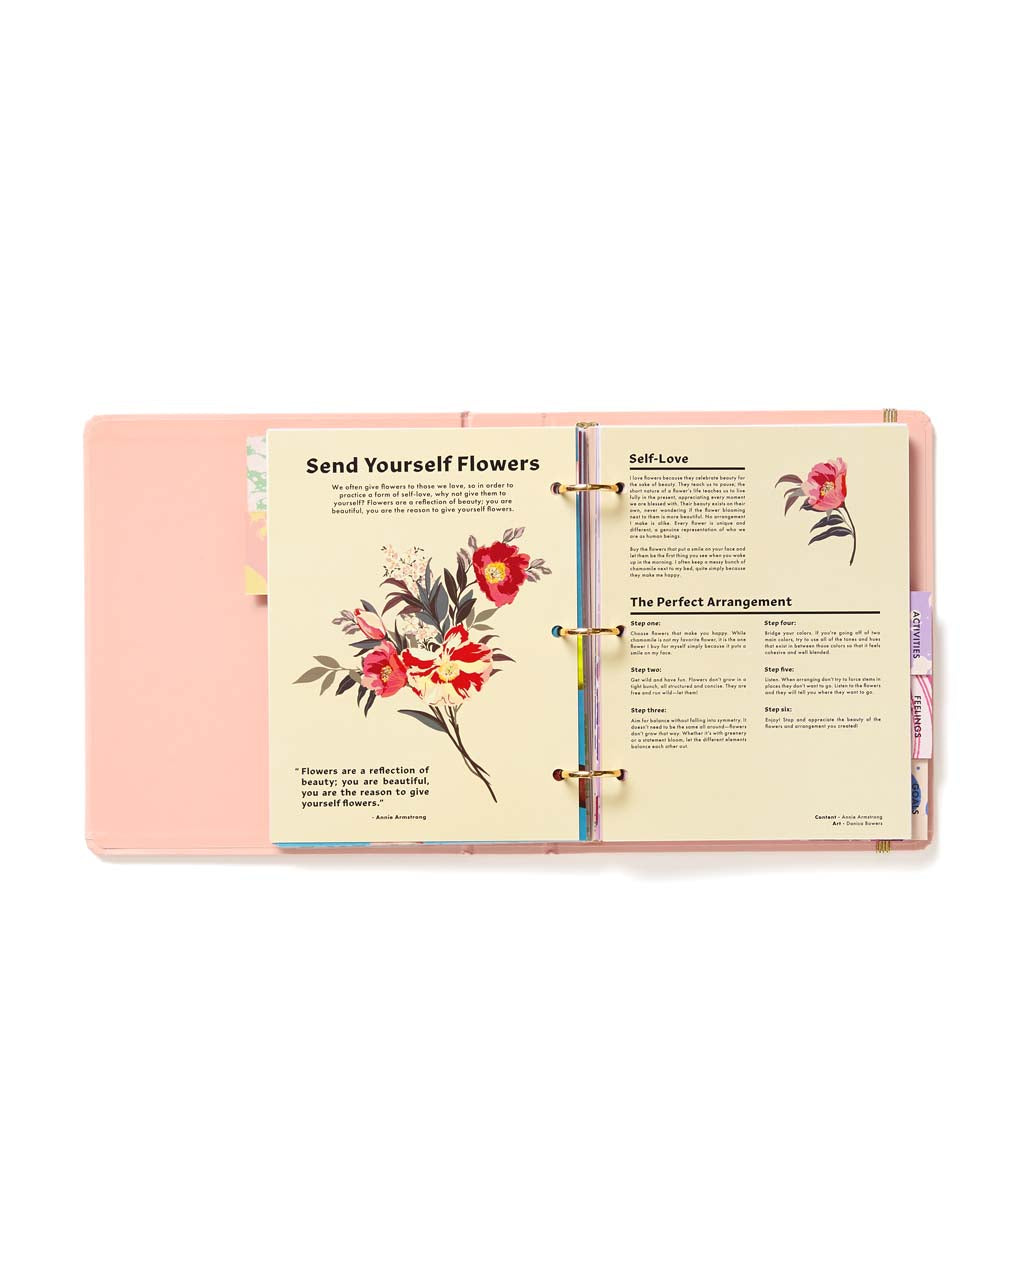 Interior view of planner with information about flower arrangements